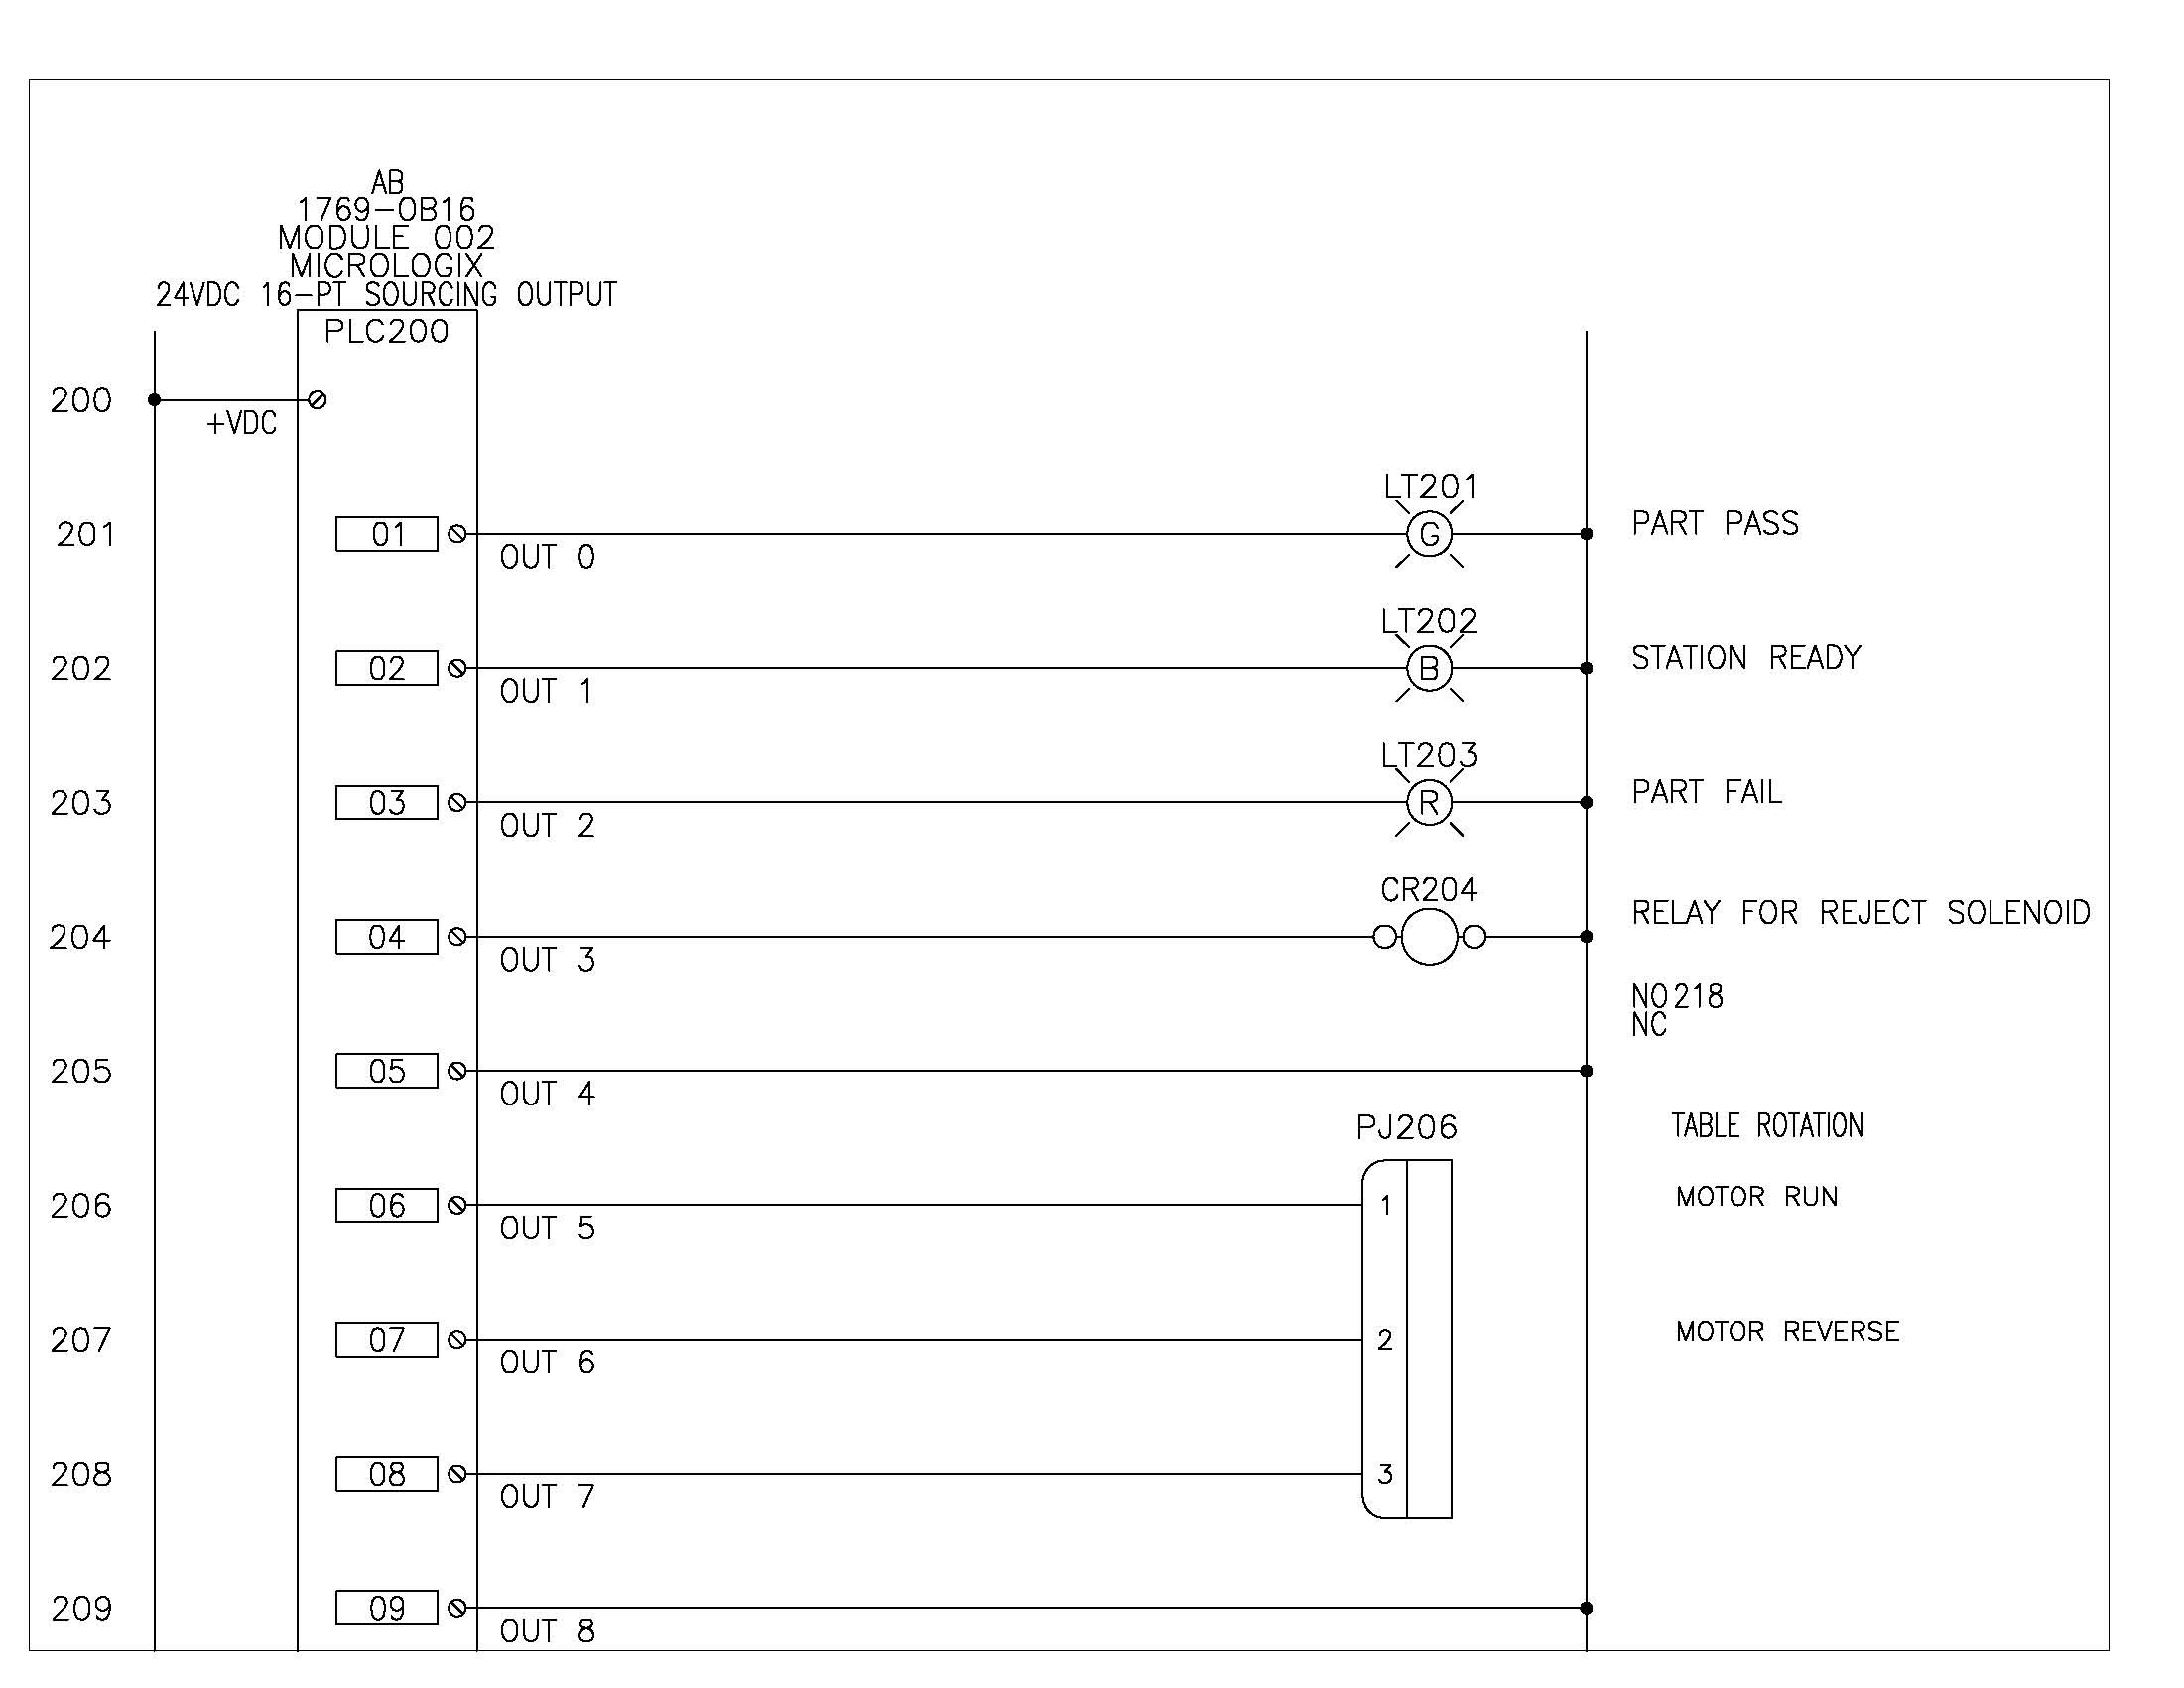 Img Ladder Logic T Ac Motor Control Circuits Plcdoc Online Shop Related Images Wiring Diagrams And